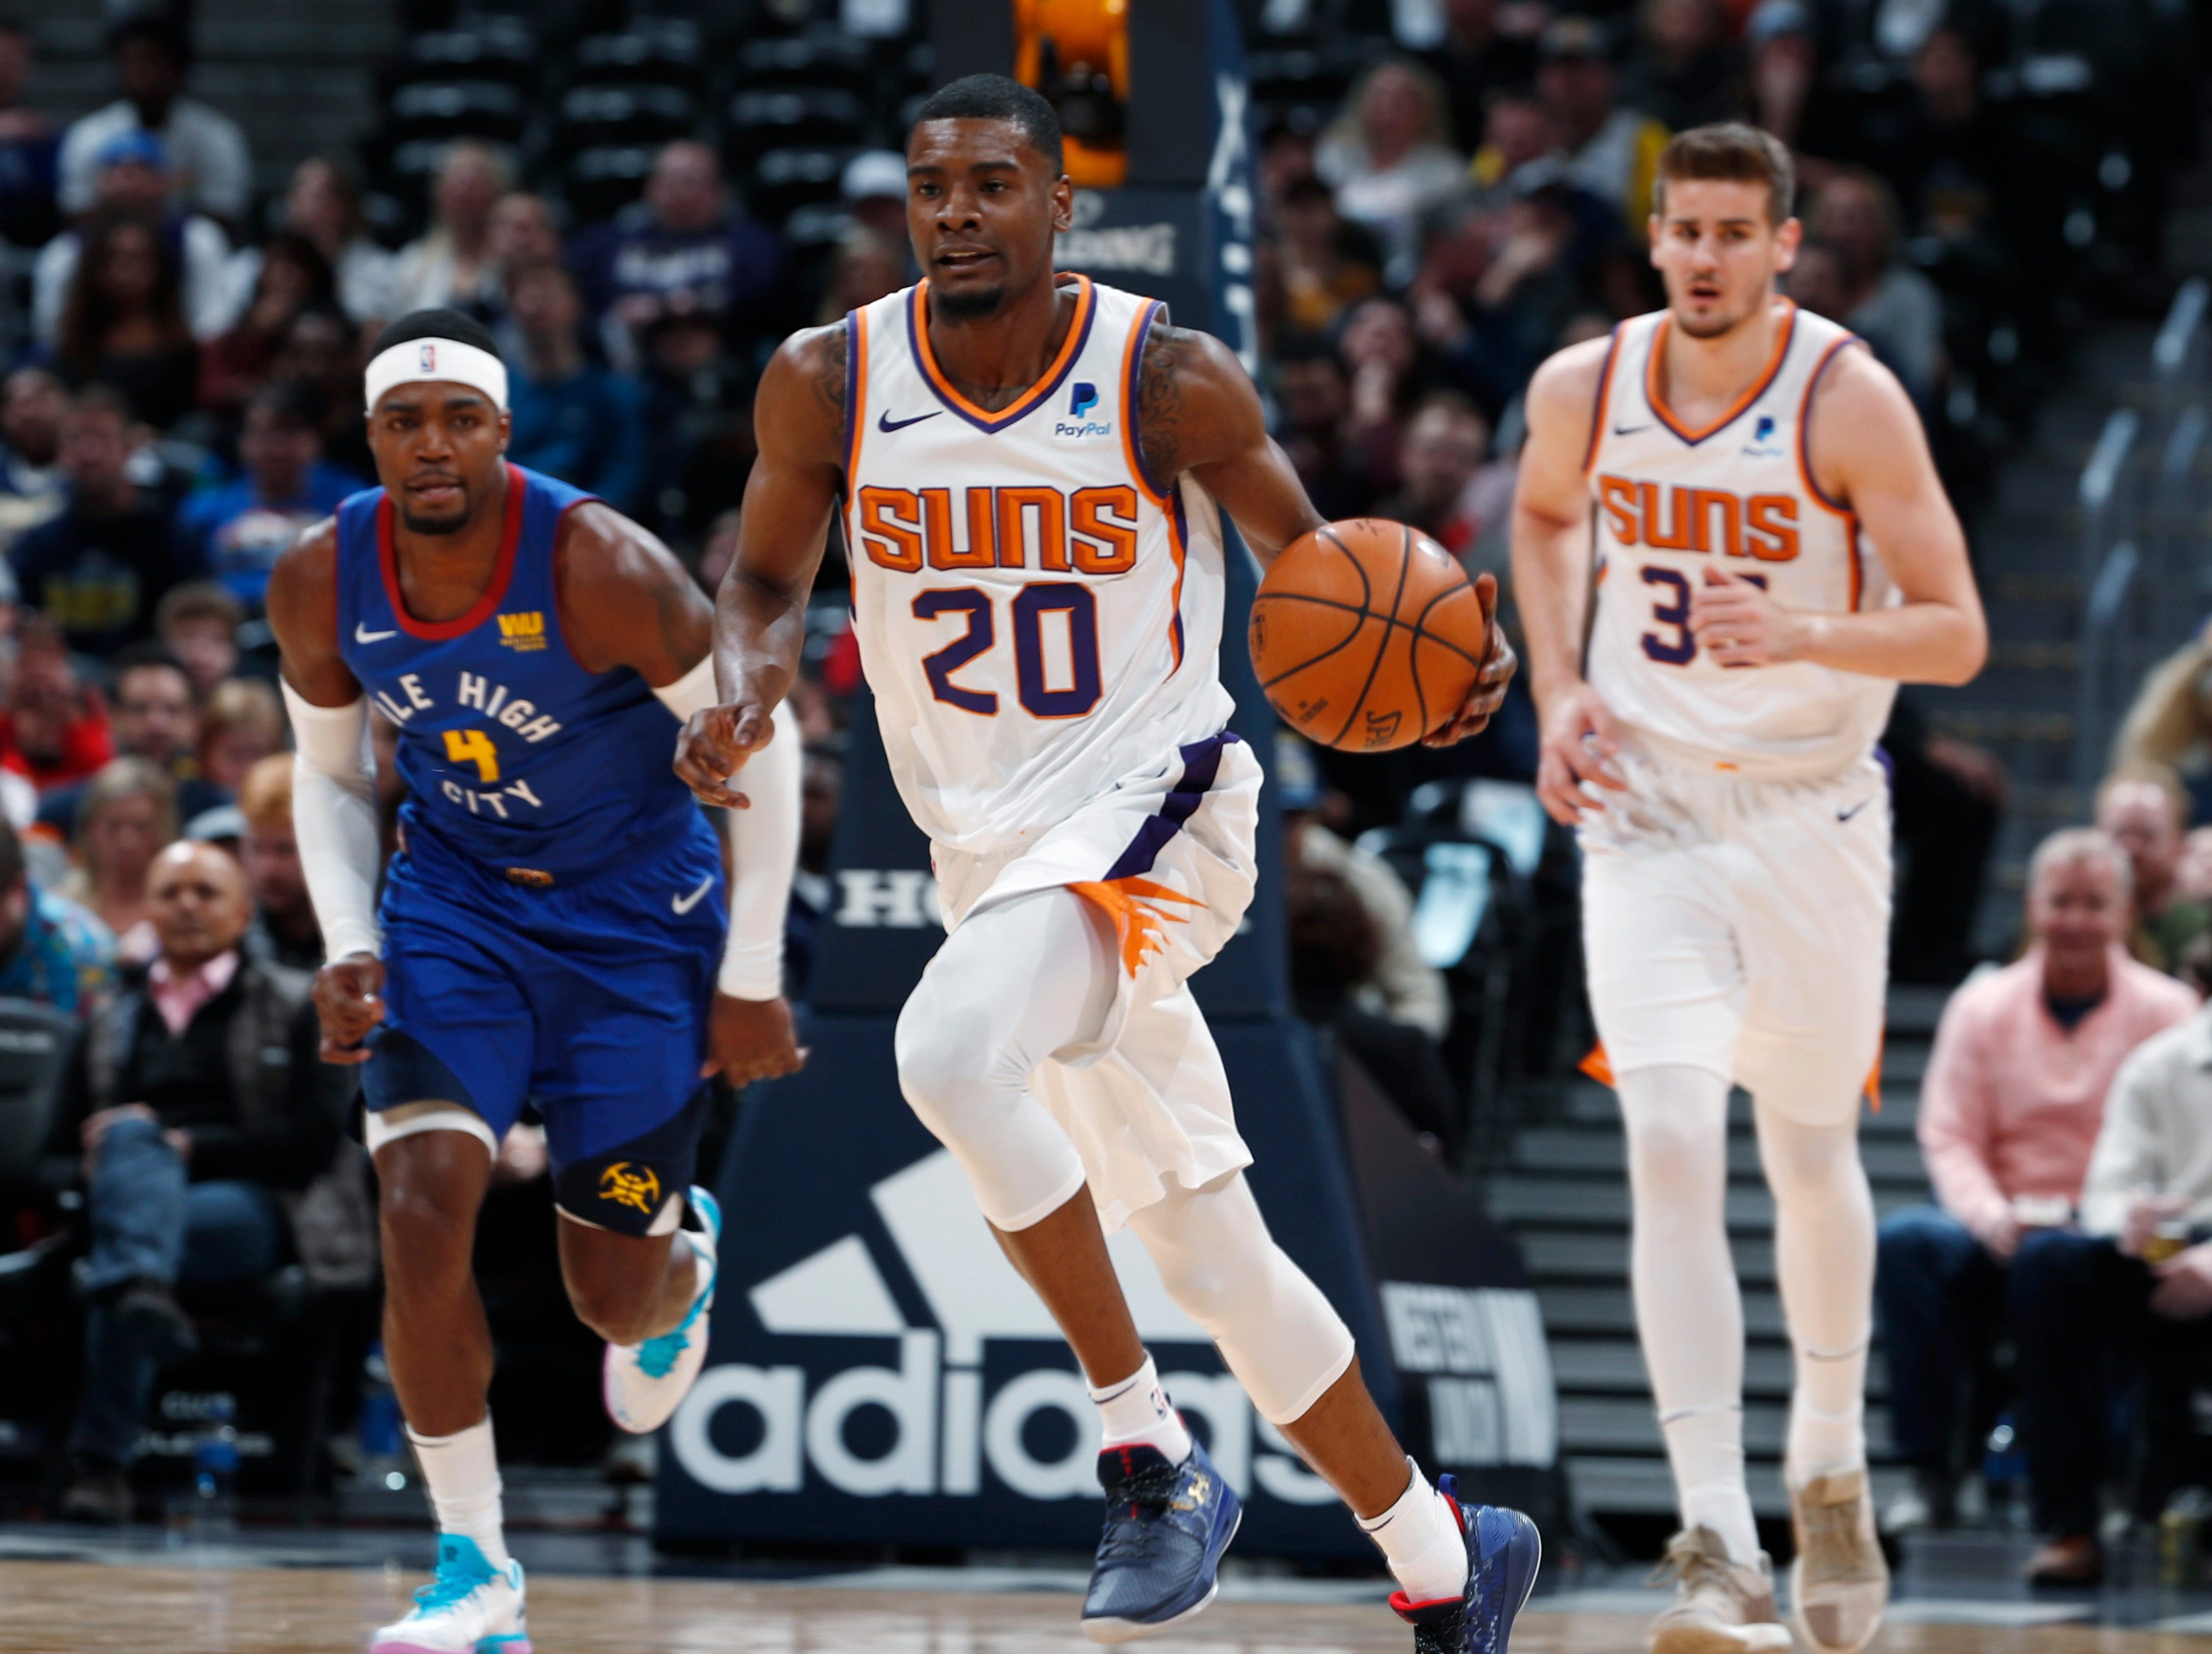 Phoenix Suns forward Josh Jackson, front, drives upcourt as Denver Nuggets forward Paul Millsap, back left, and Suns forward Dragan Bender follow in the first half of an NBA basketball game Friday, Jan. 25, 2019, in Denver. (AP Photo/David Zalubowski)